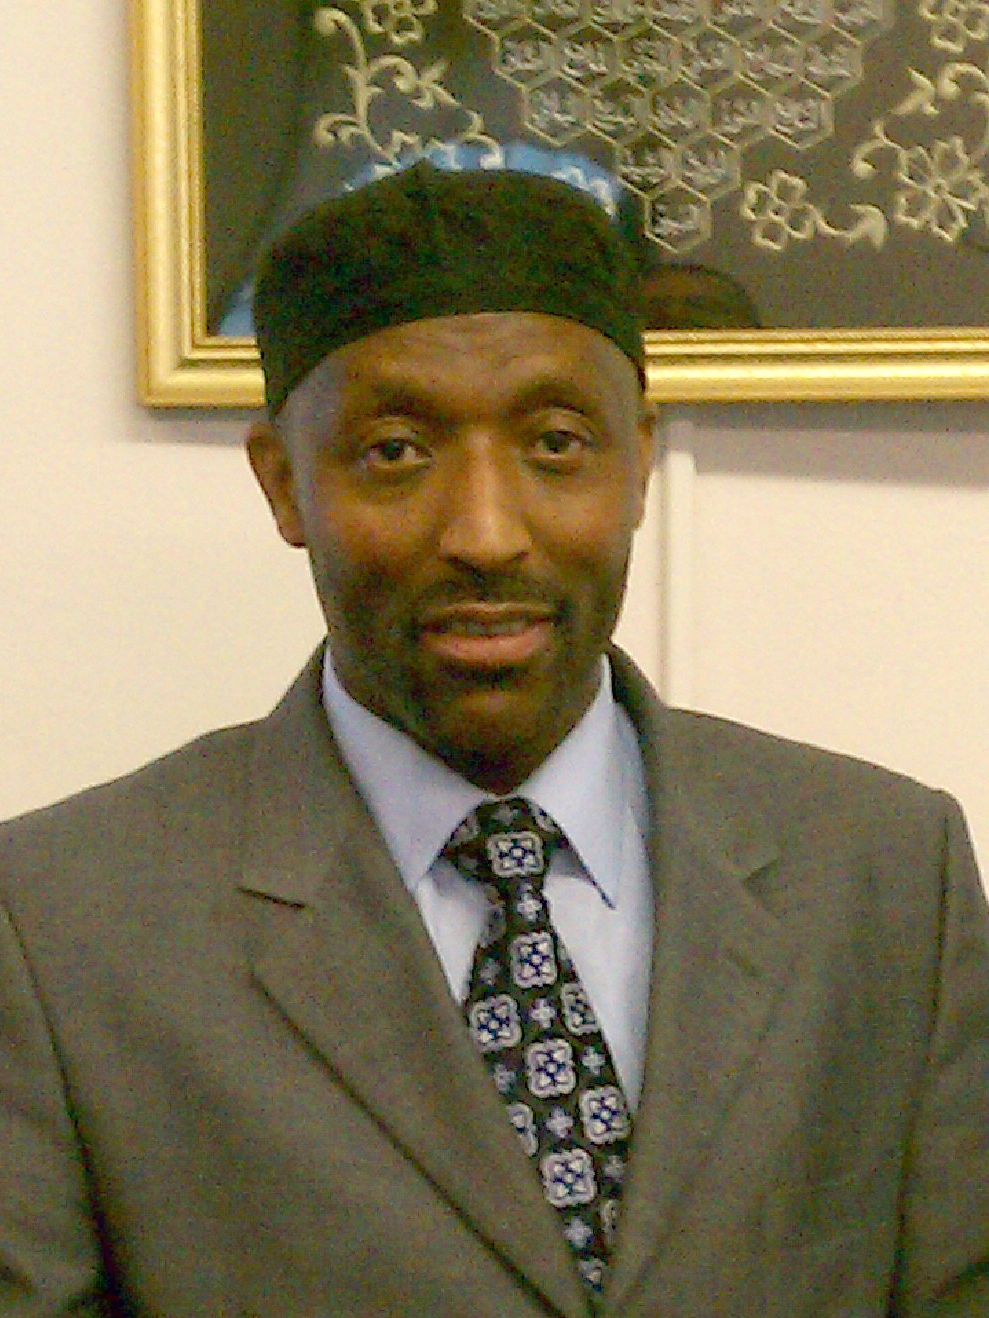 PHOTO OF IMAM YAHYA ABDULLAH.jpg